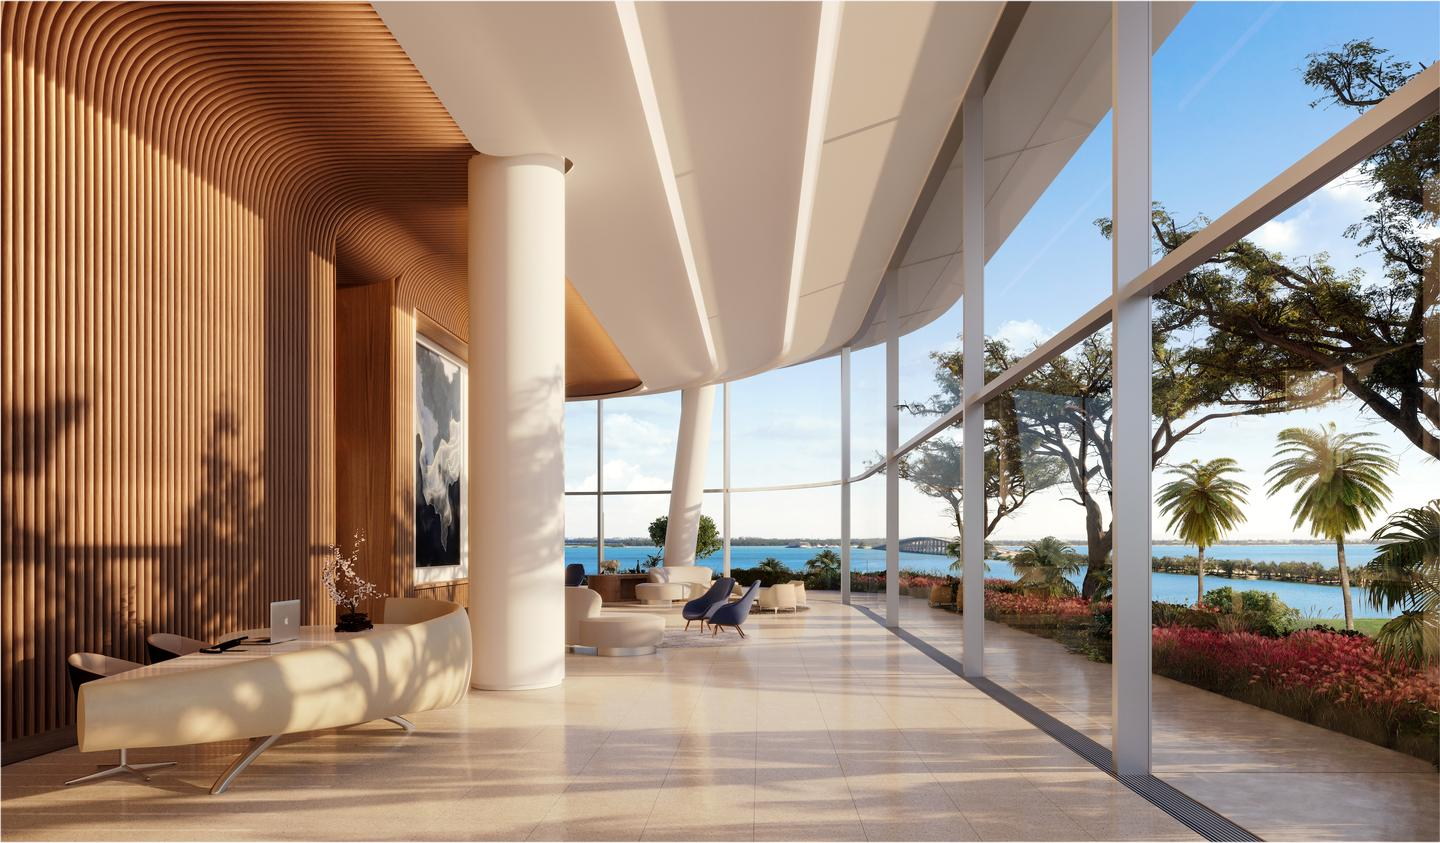 Una Residences will contain a total 135 apartments over 47 floors